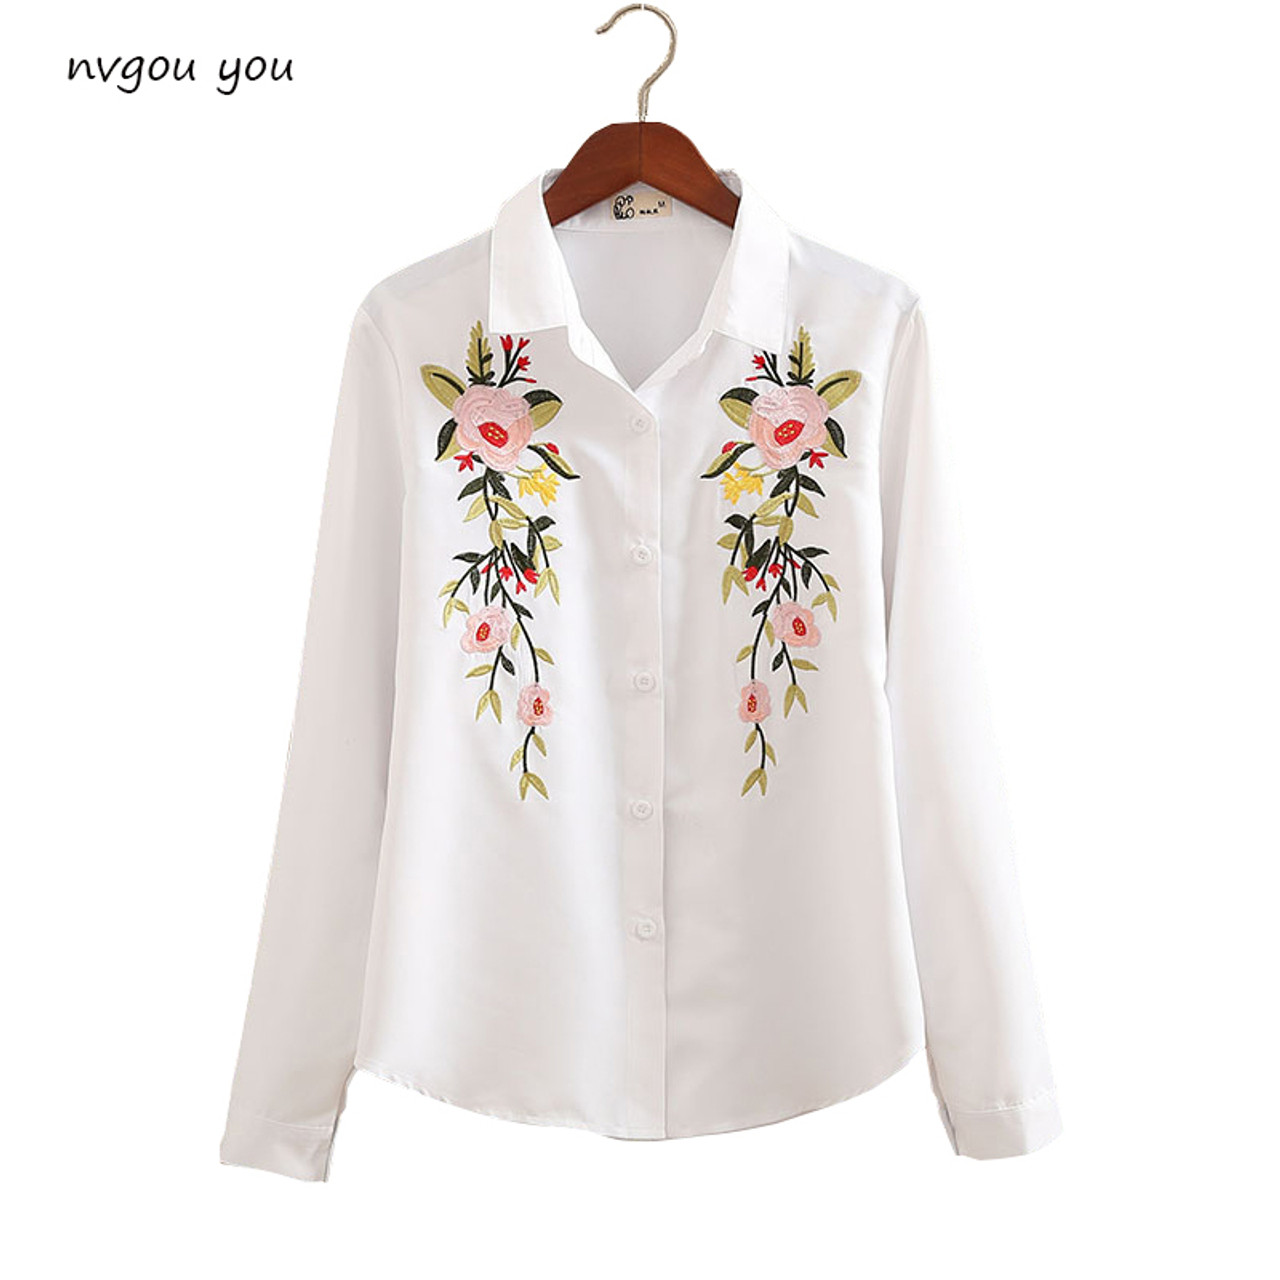 7ec76a7d61b20 nvyou gou 2018 Floral Embroidered Blouse Shirt Women Slim White Tops Long  Sleeve Blouses Woman Office ...